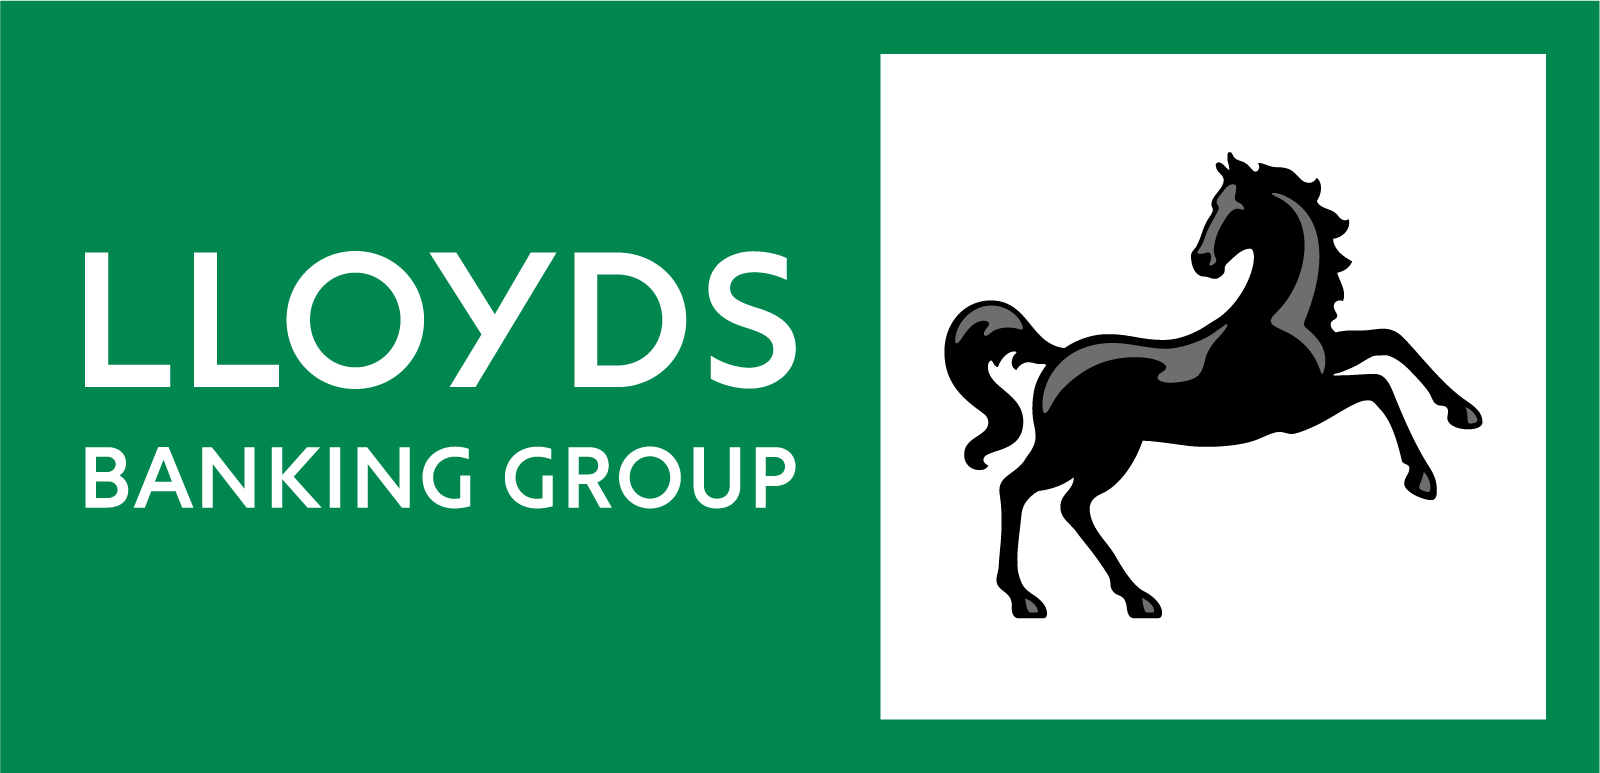 Thank you to our sponsors, Lloyds Banking Group